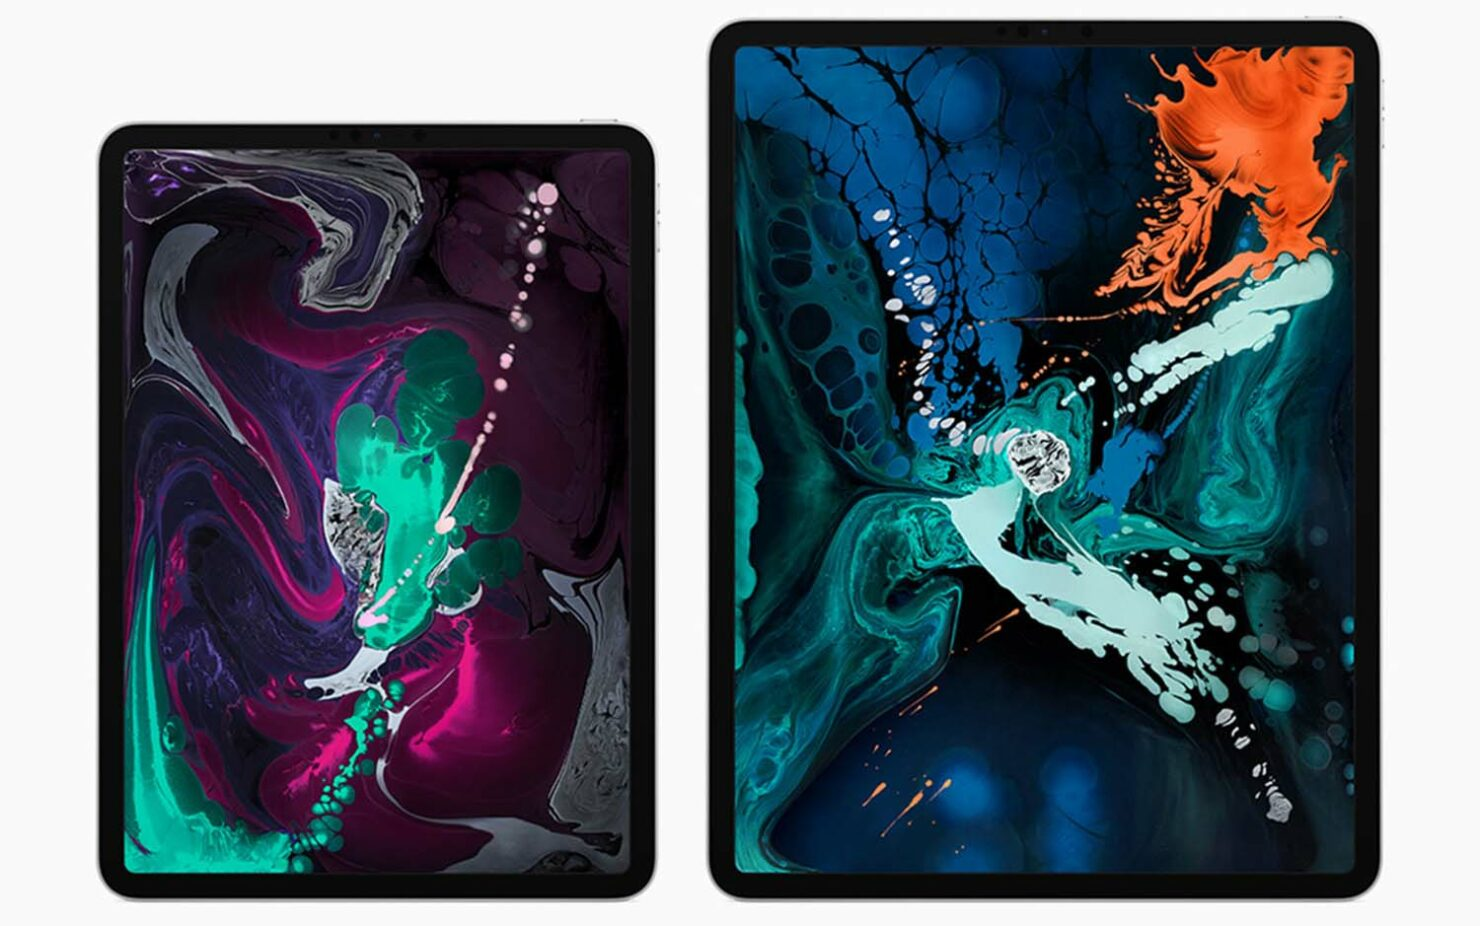 2018 iPad Pro Models Are Discounted by up to $150